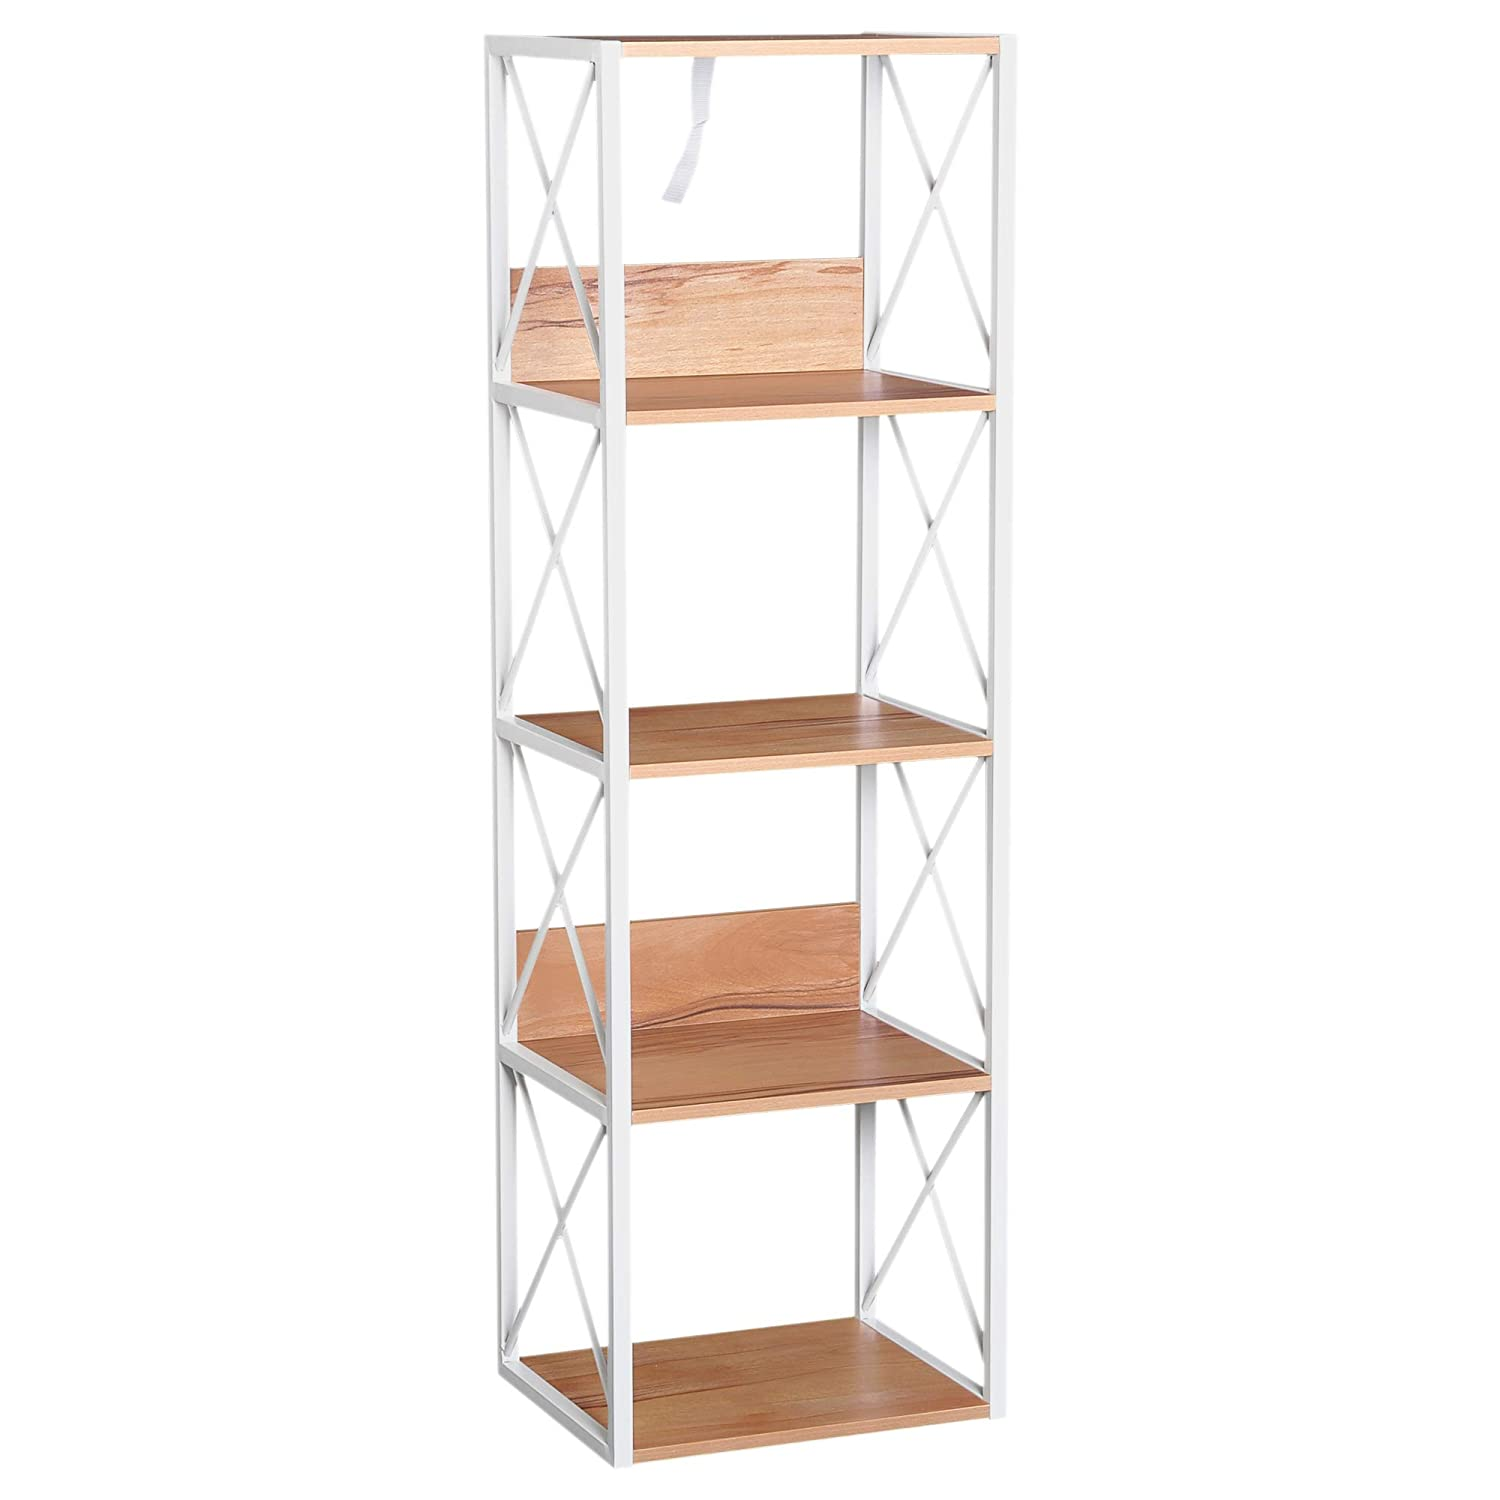 HOMCOM 3 Tier Wooden Shelf Freestanding Rack Organiser Display Bookcase Home Storage Utility Stand Multifunctional Holder Sold by MHSTAR